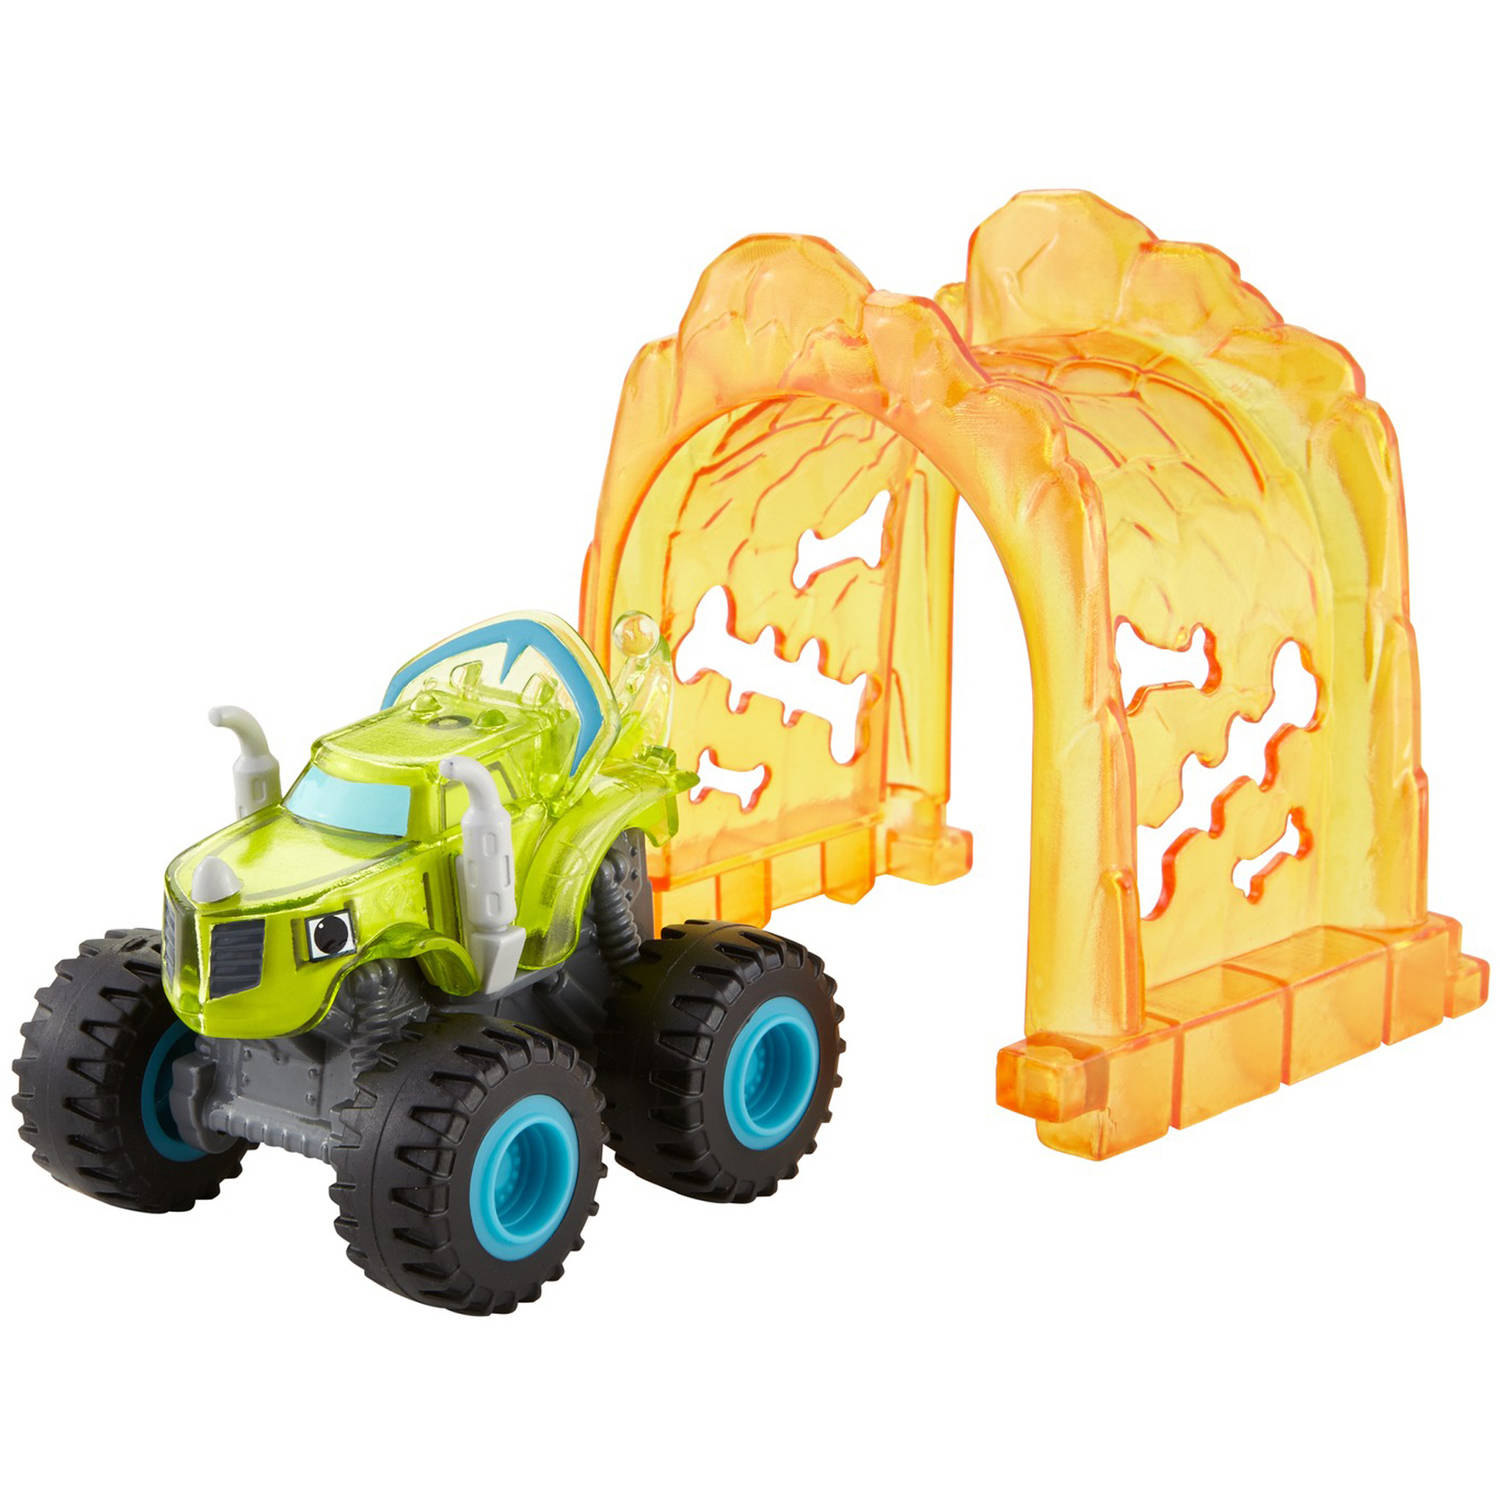 Nickelodeon Blaze and the Monster Machines Light Rider Zeg by FISHER-PRICE BRANDS A DIVISION OF MATTEL DIRECT IMPORT INC